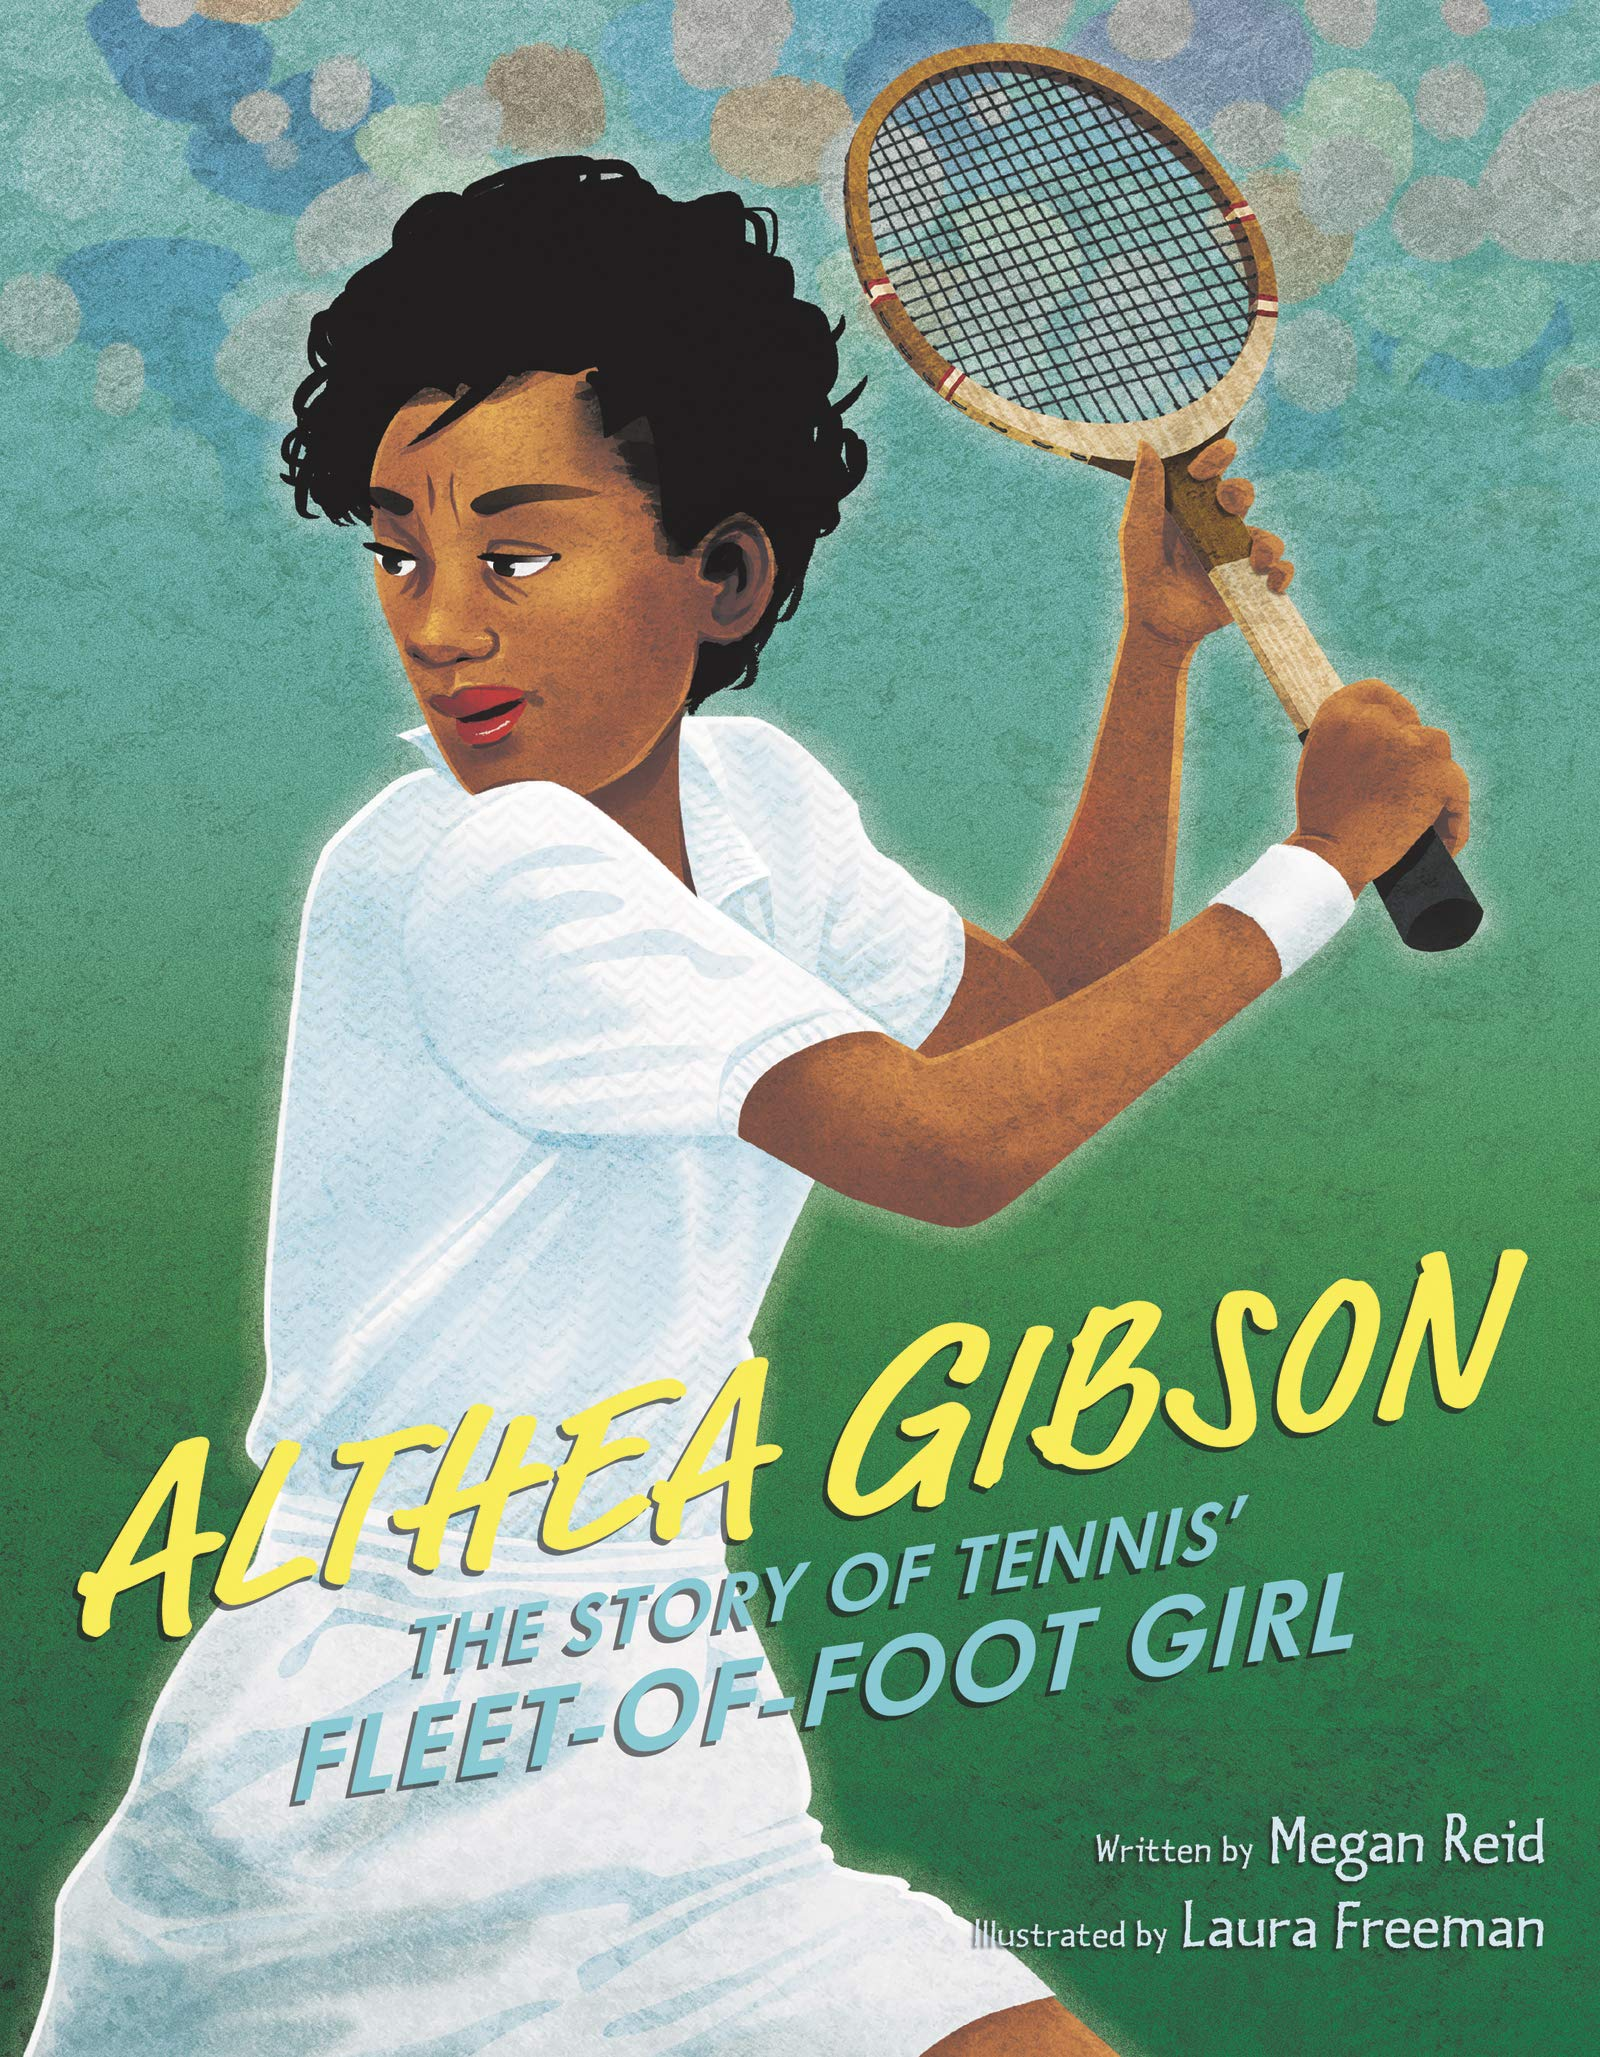 Image result for althea gibson the story of tennis' fleet-of-foot girl